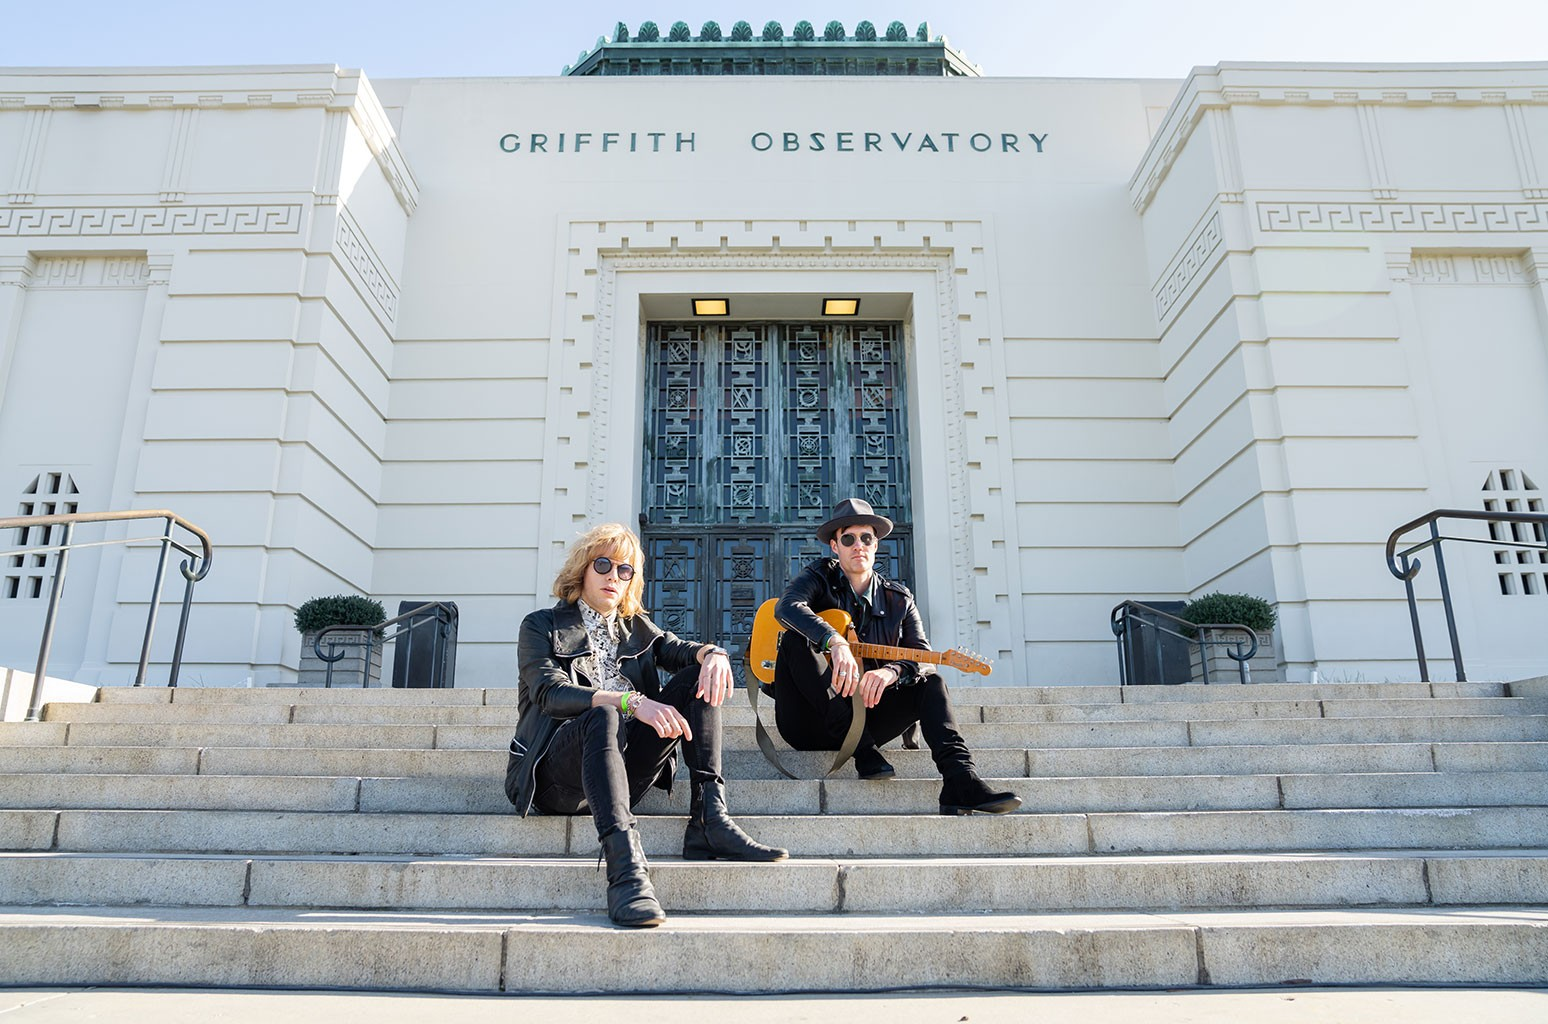 Bob Moses, The Griffith Observatory